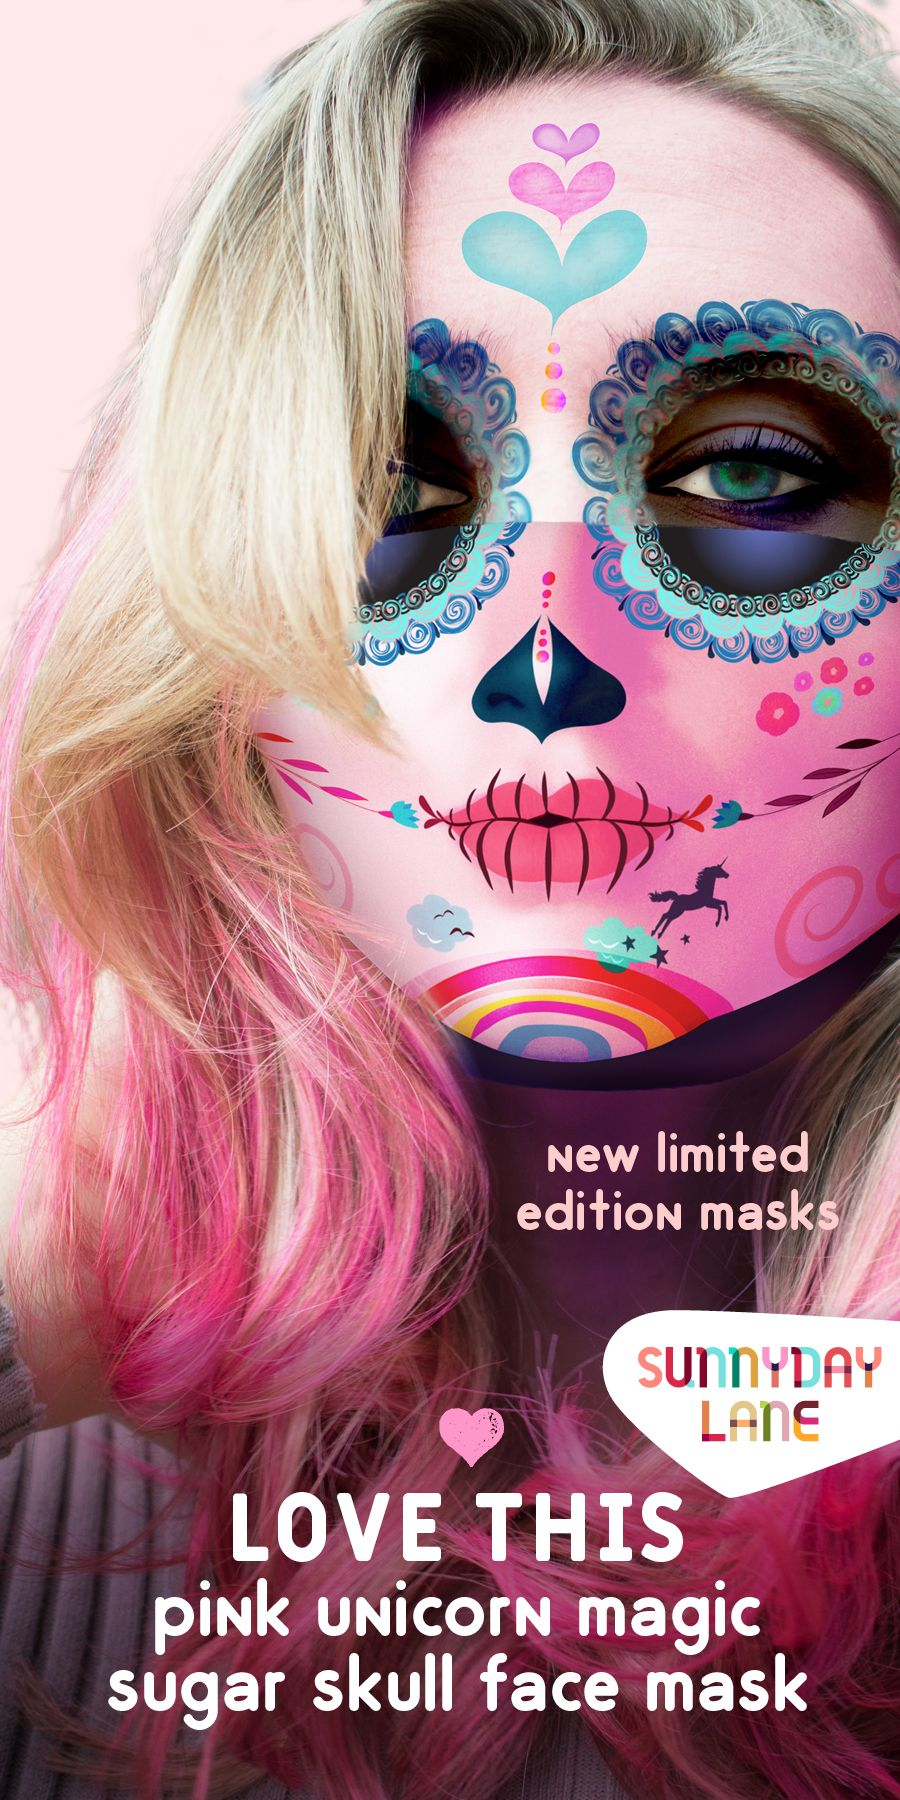 October Sale Pink Sugar Skull Face Mask Of My Unicorn And Rainbow Dreams In 2020 Sugar Skull Face Black Kids Hairstyles Skull Face Mask